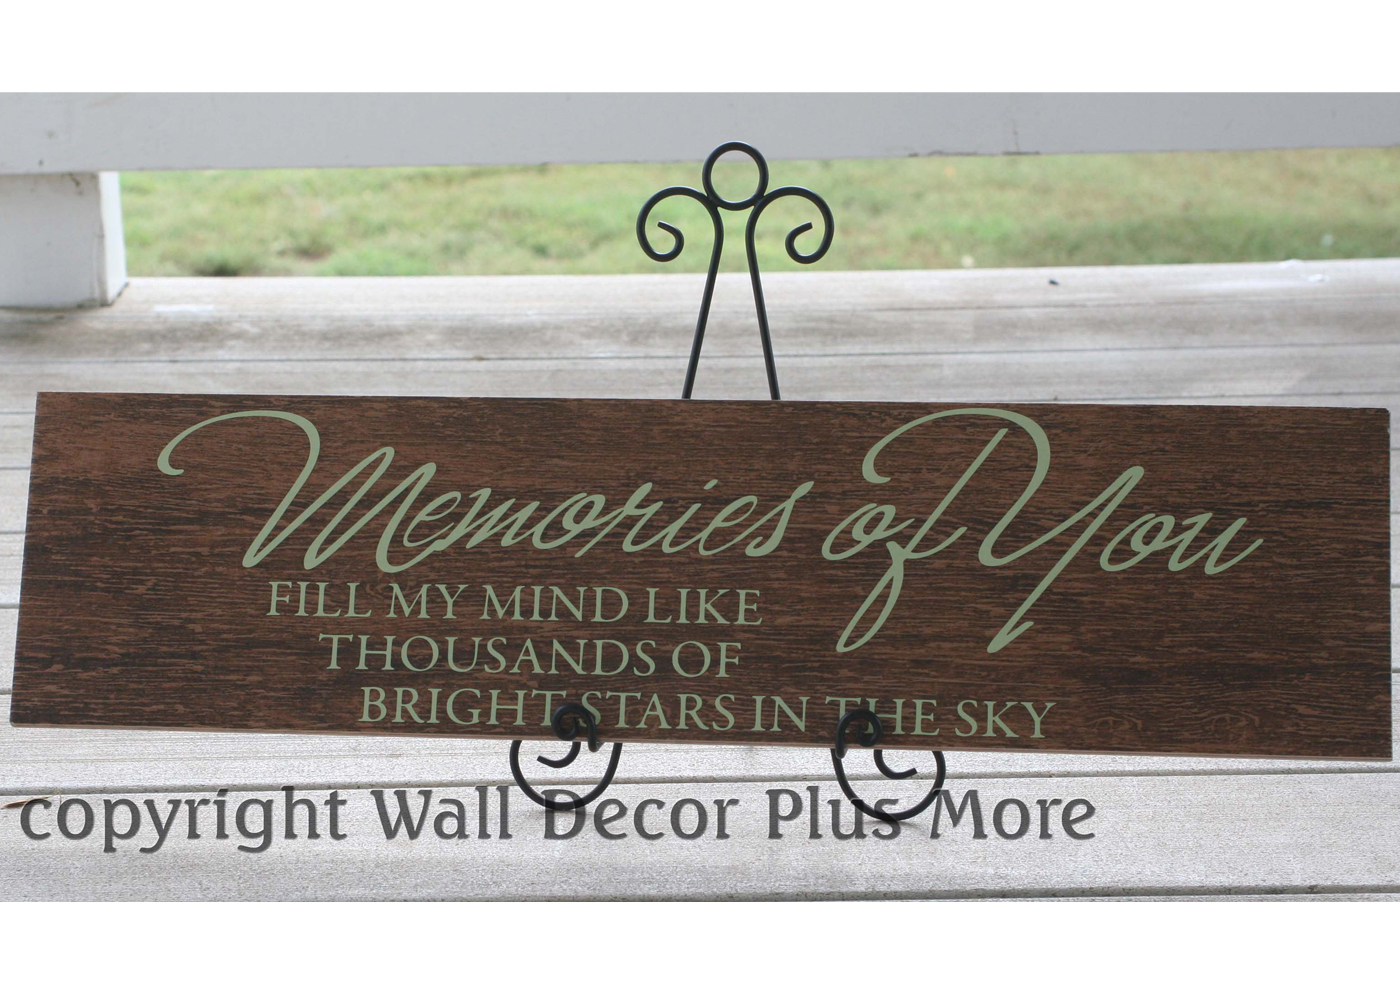 memories-of-you-sympathy-vinyl-decal-on-tile-board.jpg